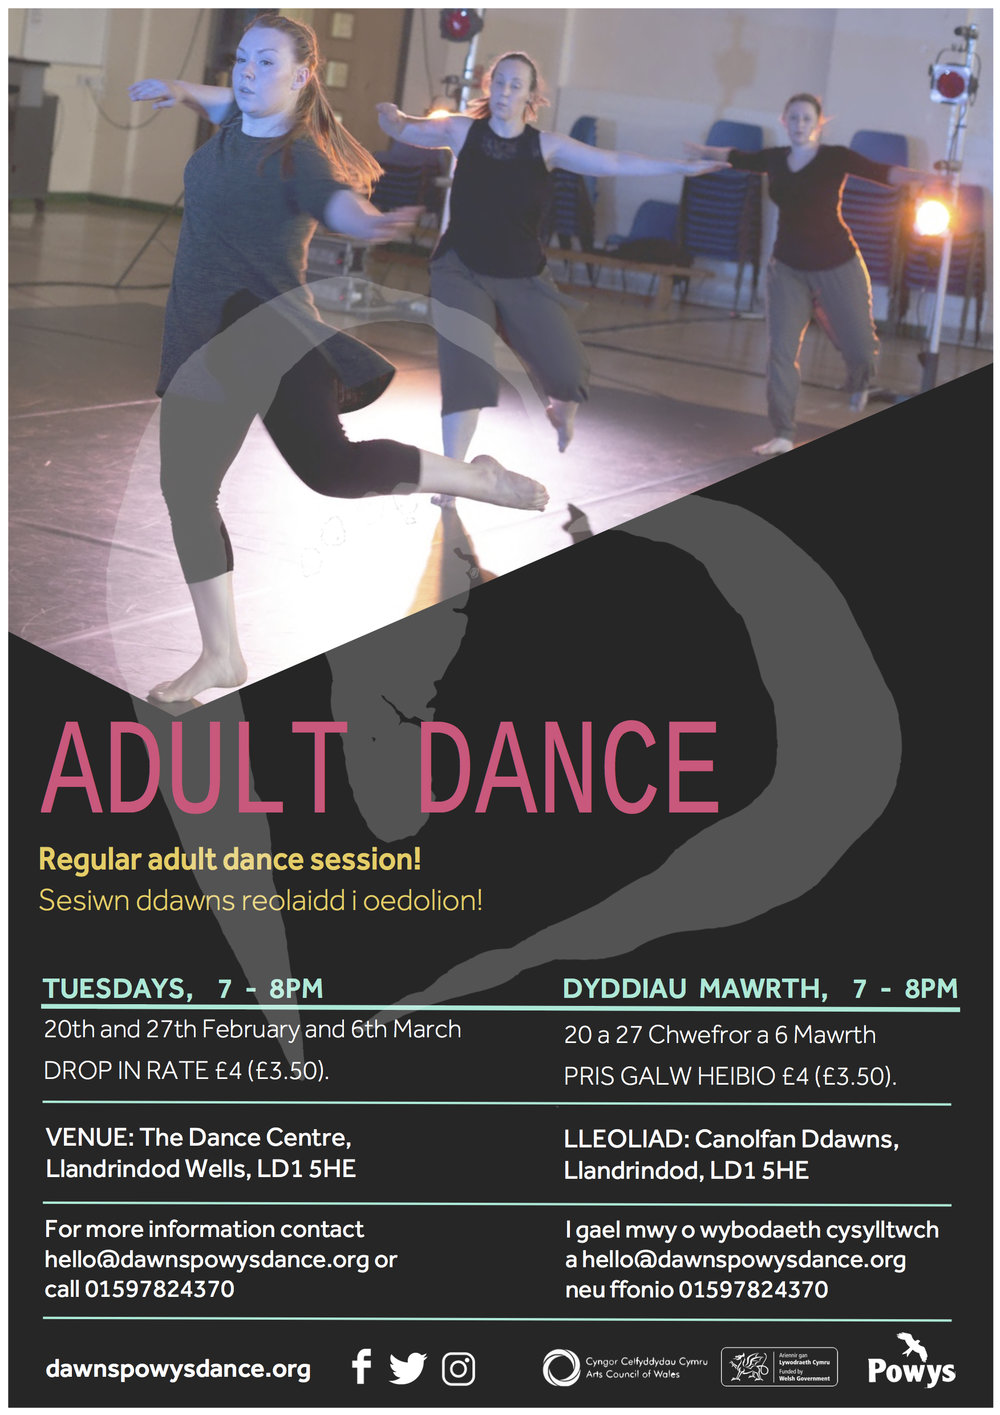 Adult Dance - Jazz 2018.jpg